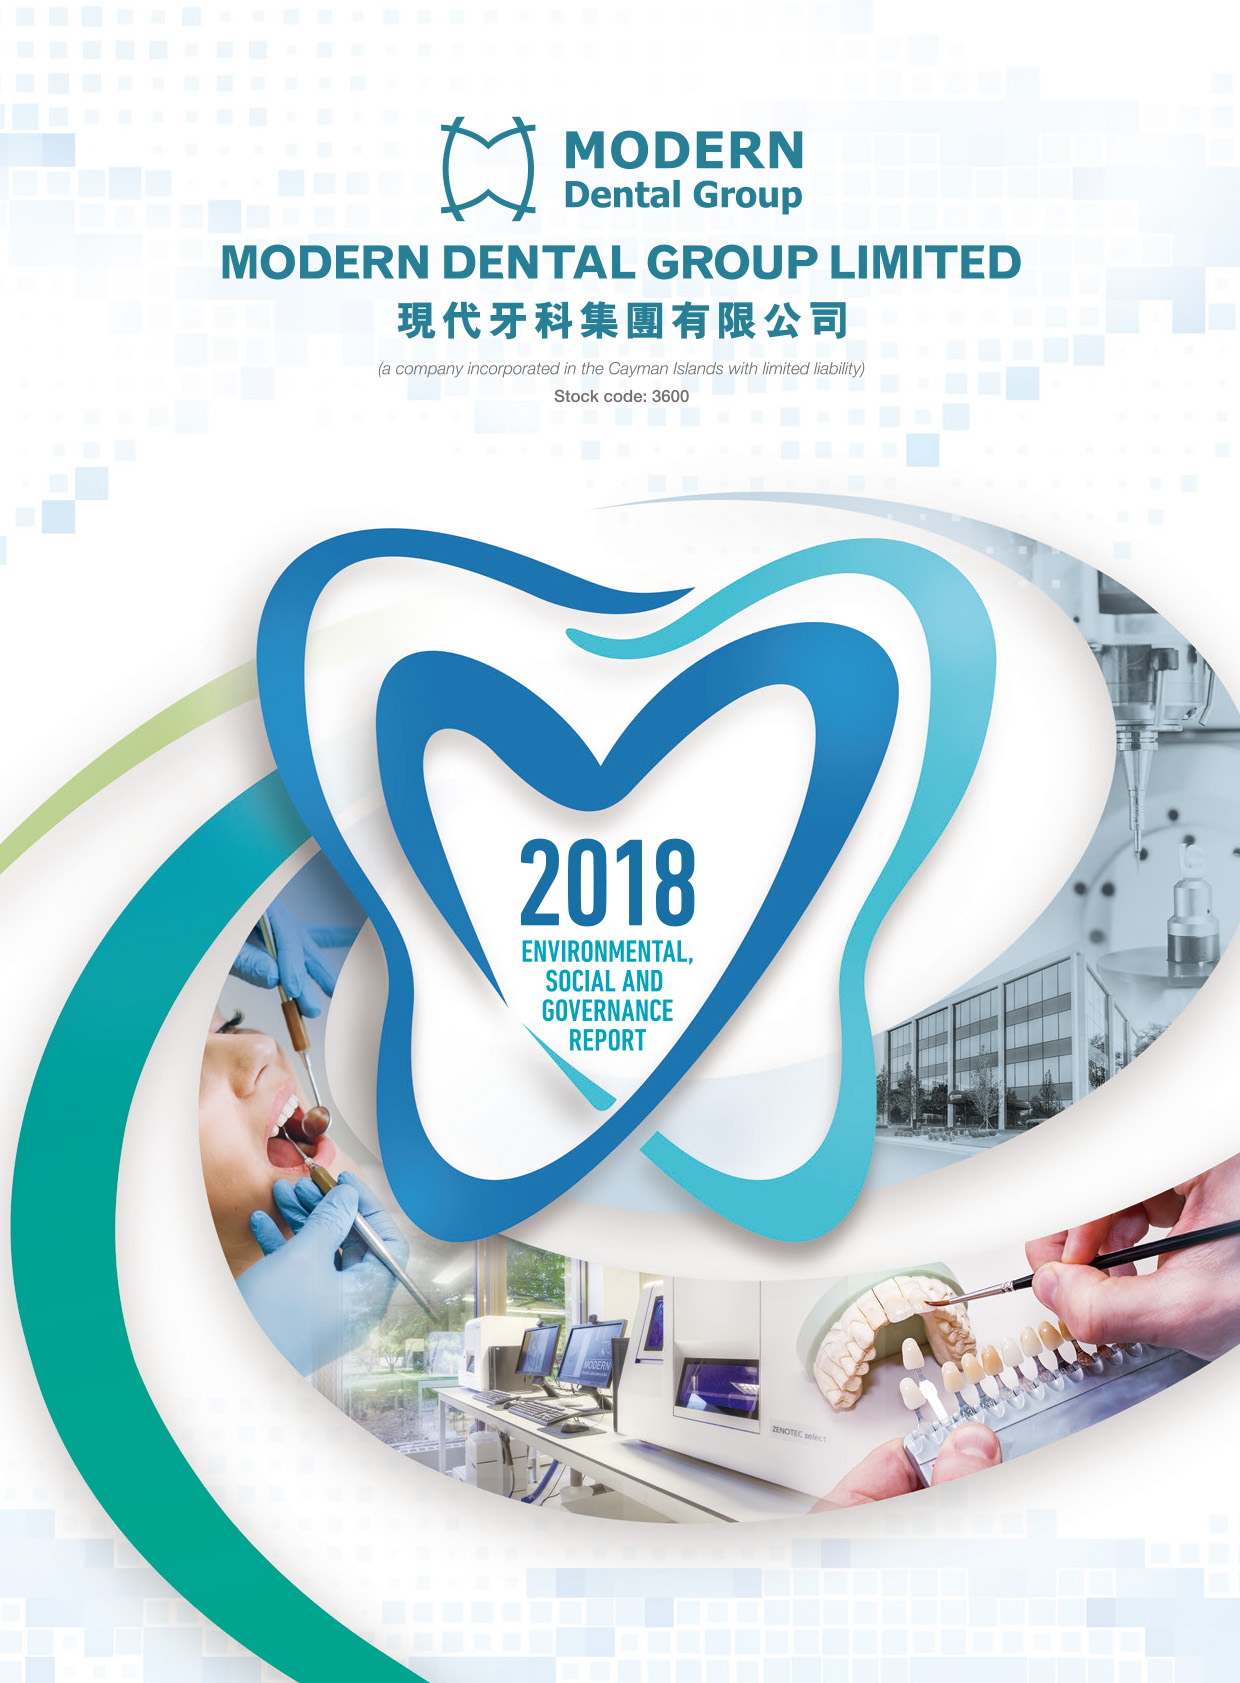 MODERN DENTAL GROUP LIMITED ESG